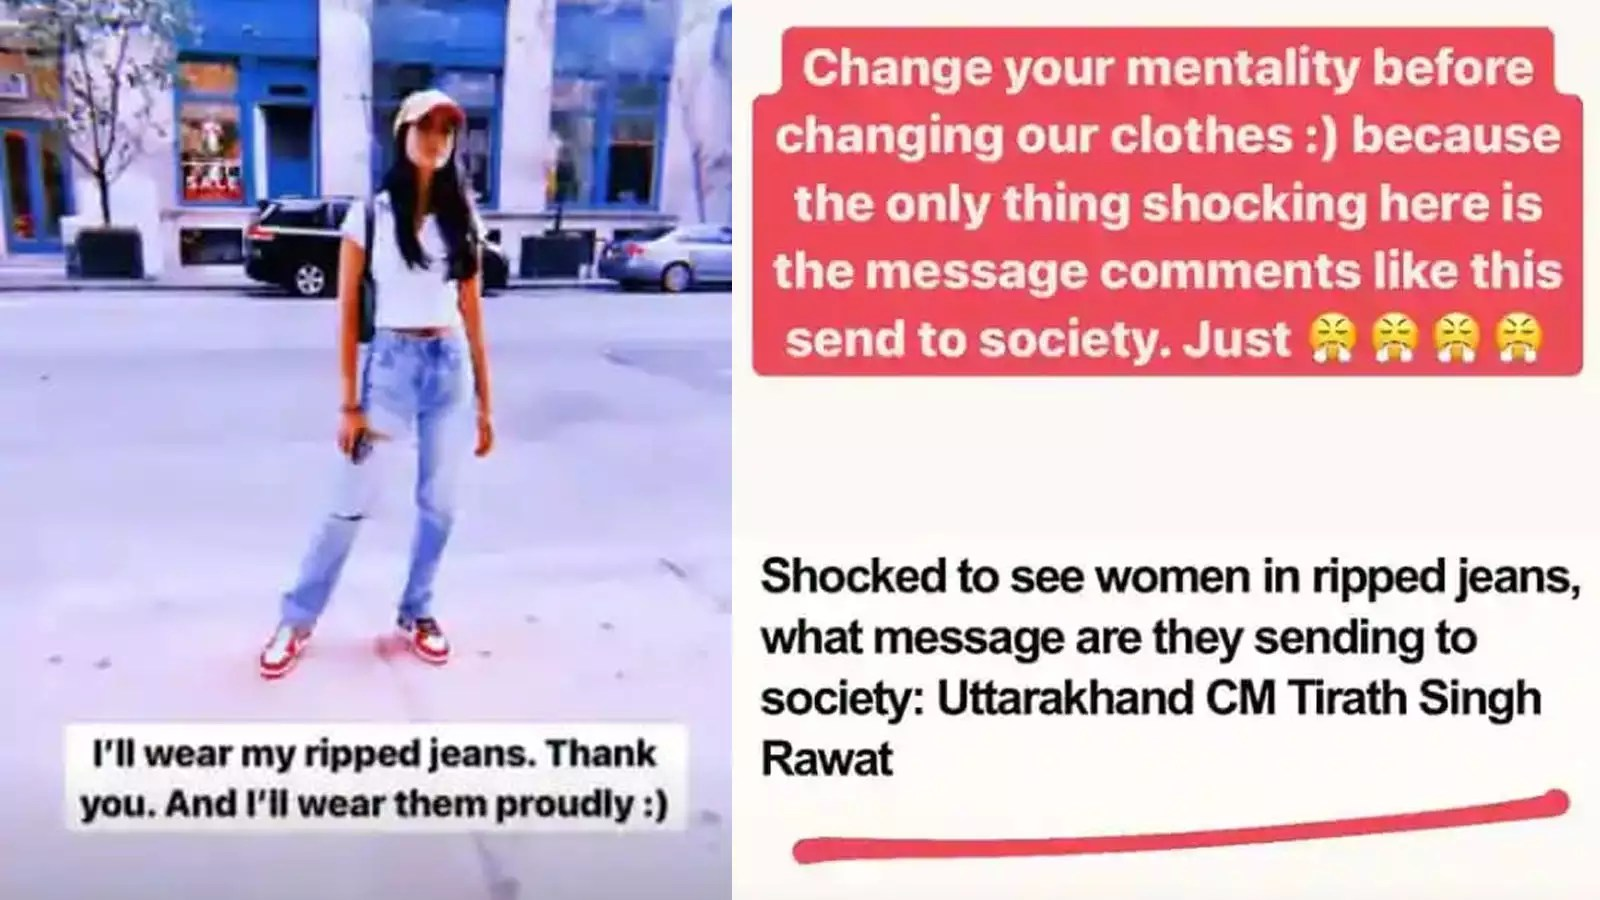 Amitabh Bachchan's granddaughter Navya Naveli Nanda reacts to Uttarakhand CM's  comment on ripped jeans: 'Change your mentality before changing our  clothes' | Hindi Movie News - Bollywood - Times of India